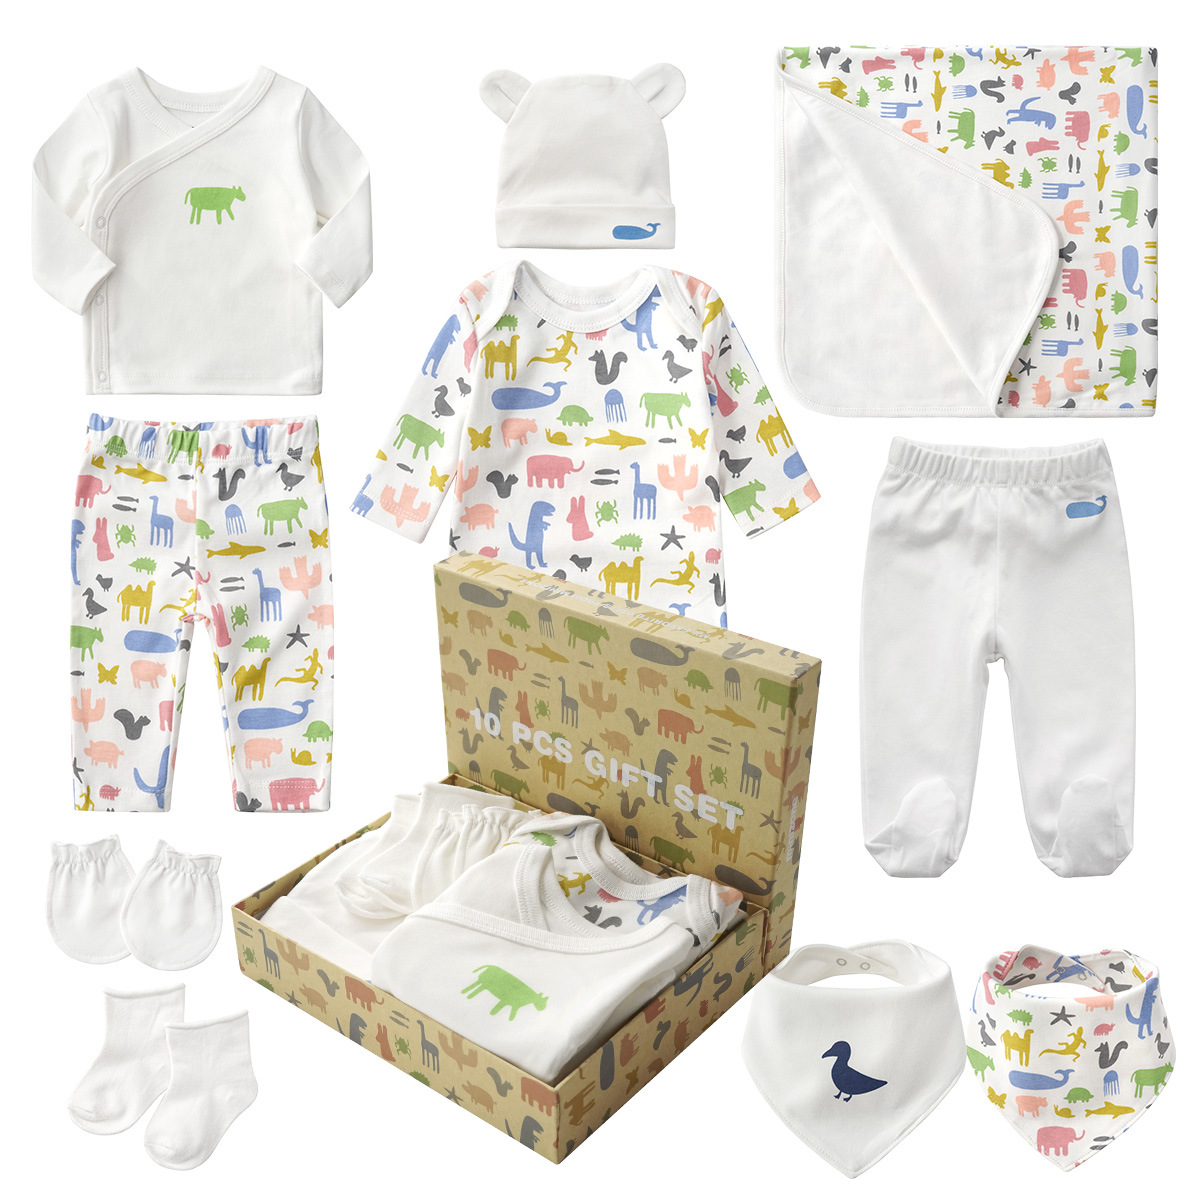 10pcs Baby Products Boy And Girls Full Moon Fashion Sets Spring And Autumn Baby Best Gift Newborn-baby-clothes Unisex Set Cotton 10pcs baby products boy and girls full moon fashion sets spring and autumn baby best gift newborn baby clothes unisex set cotton